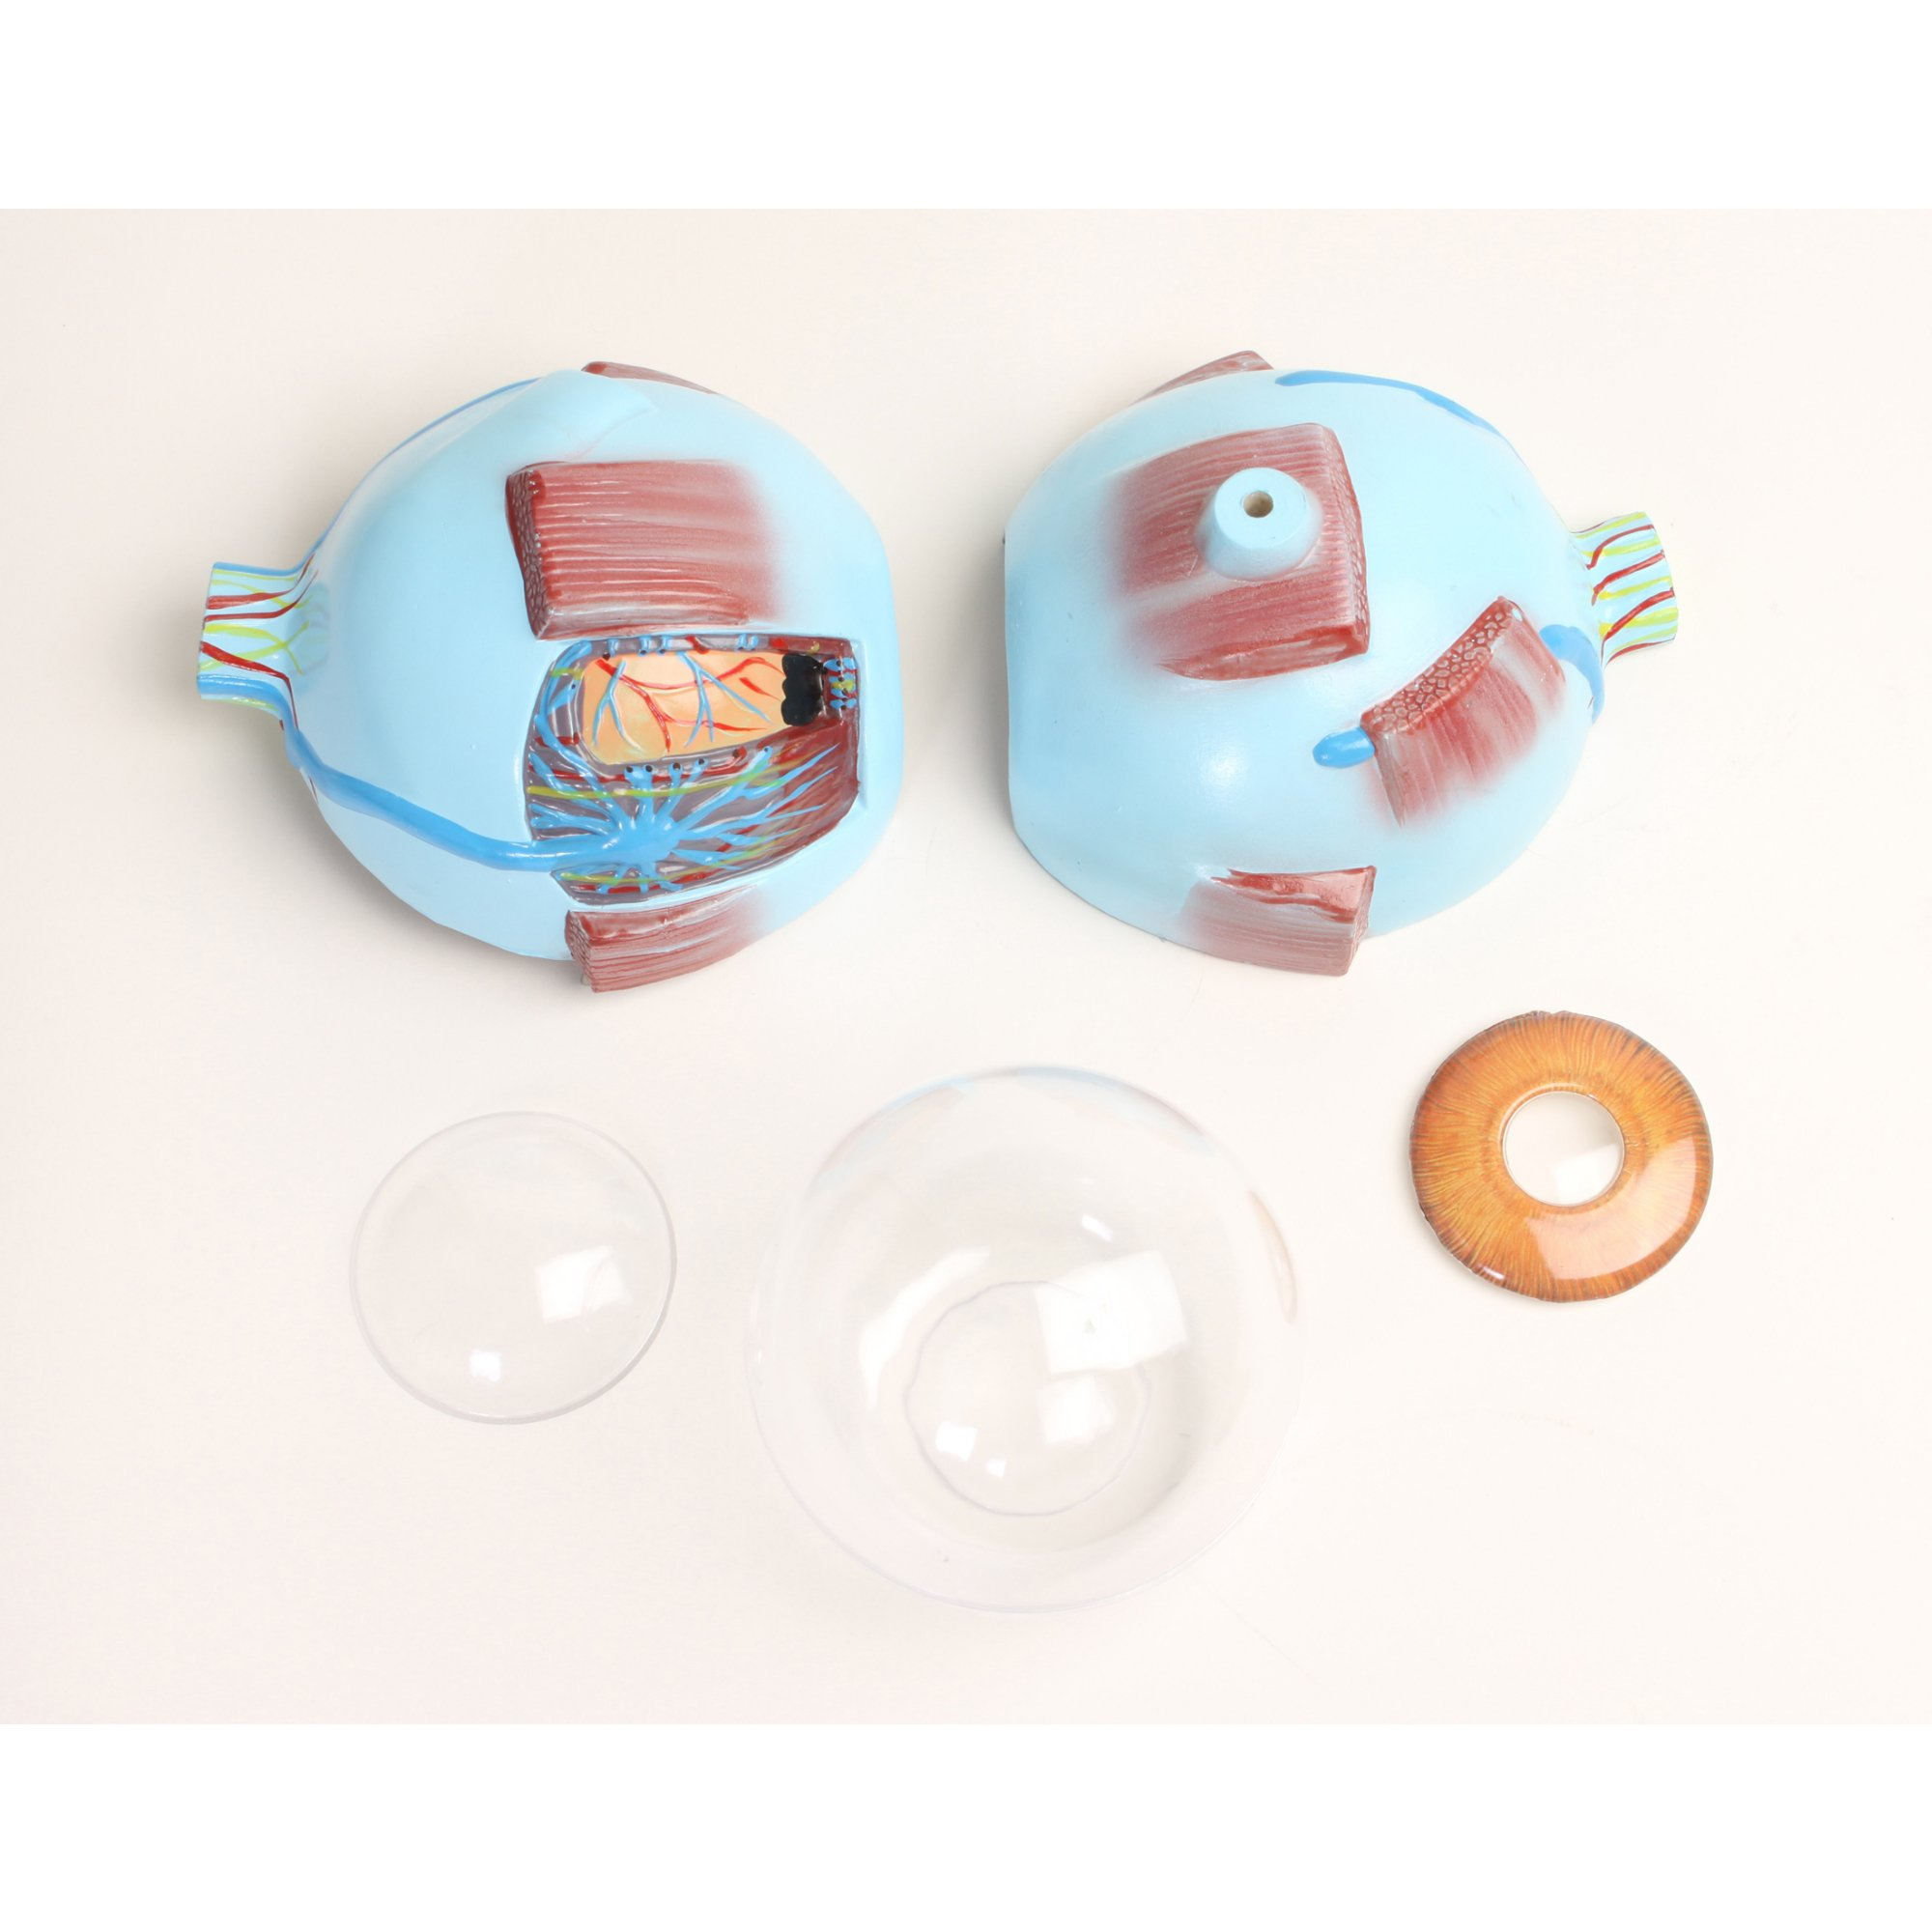 Giant Eye Anatomy Model Funique Science Games Kits And Teaching